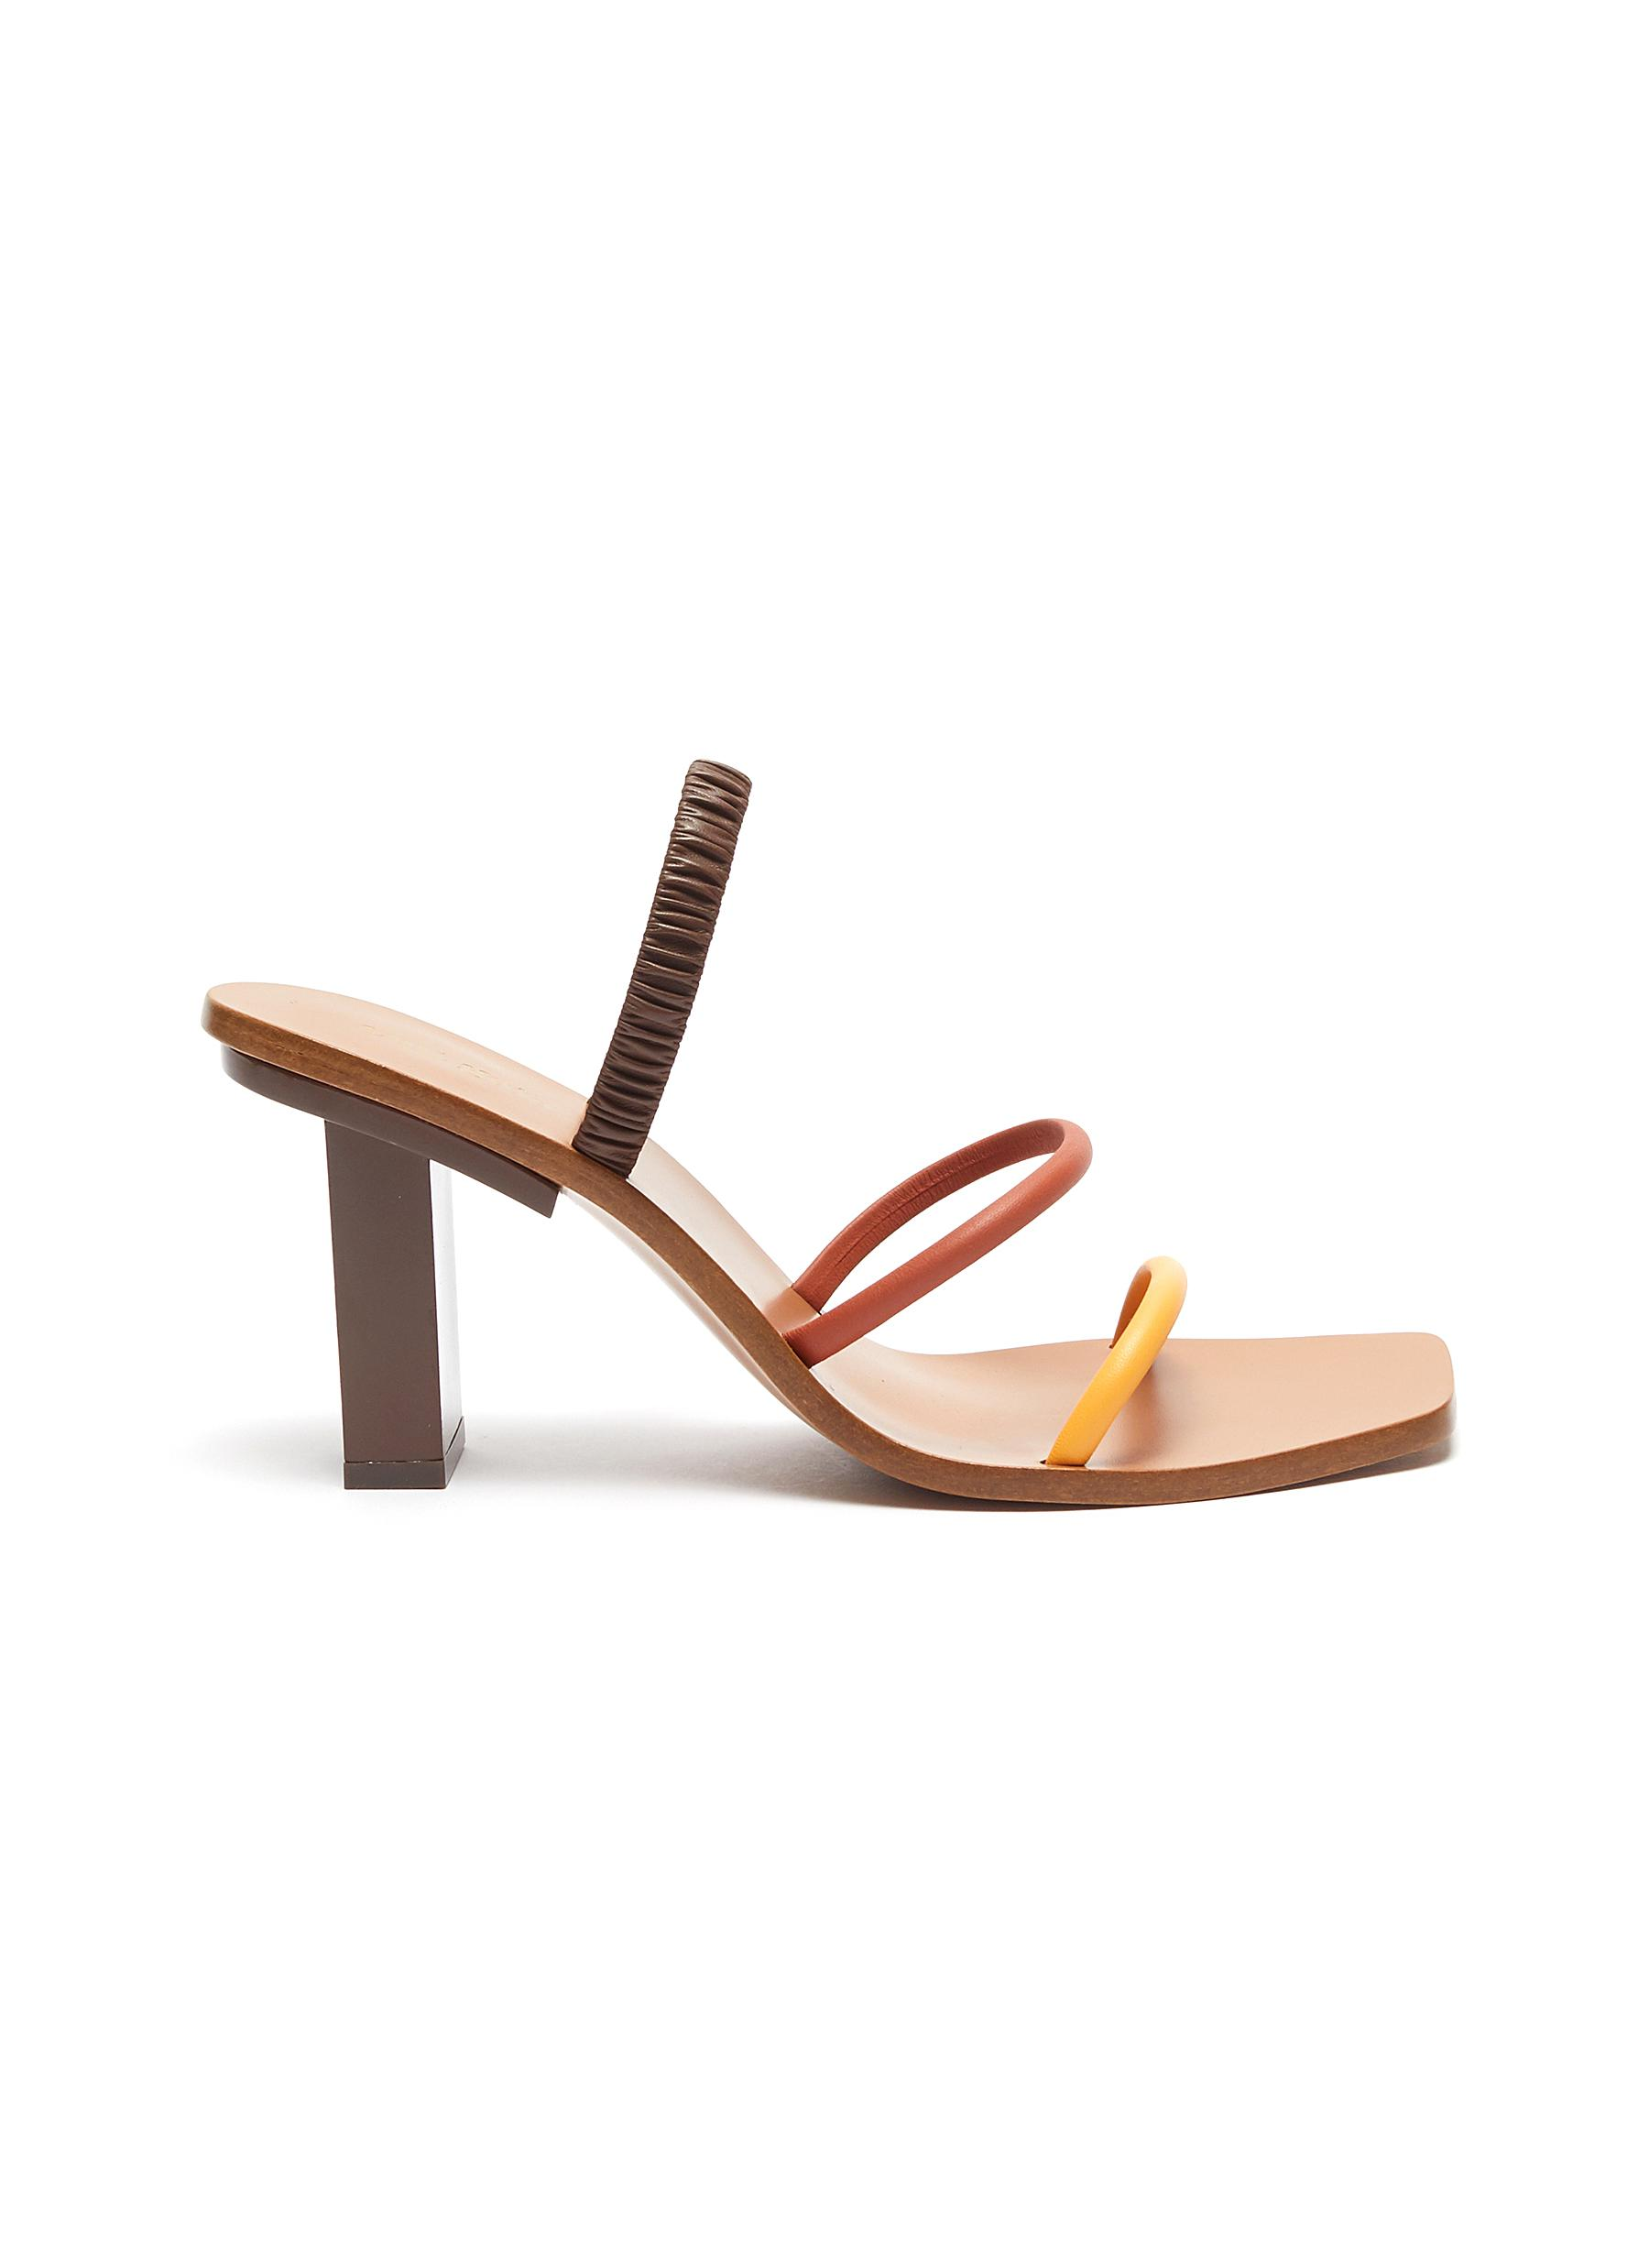 Kaia strappy colourblock leather slingback sandals by Cult Gaia